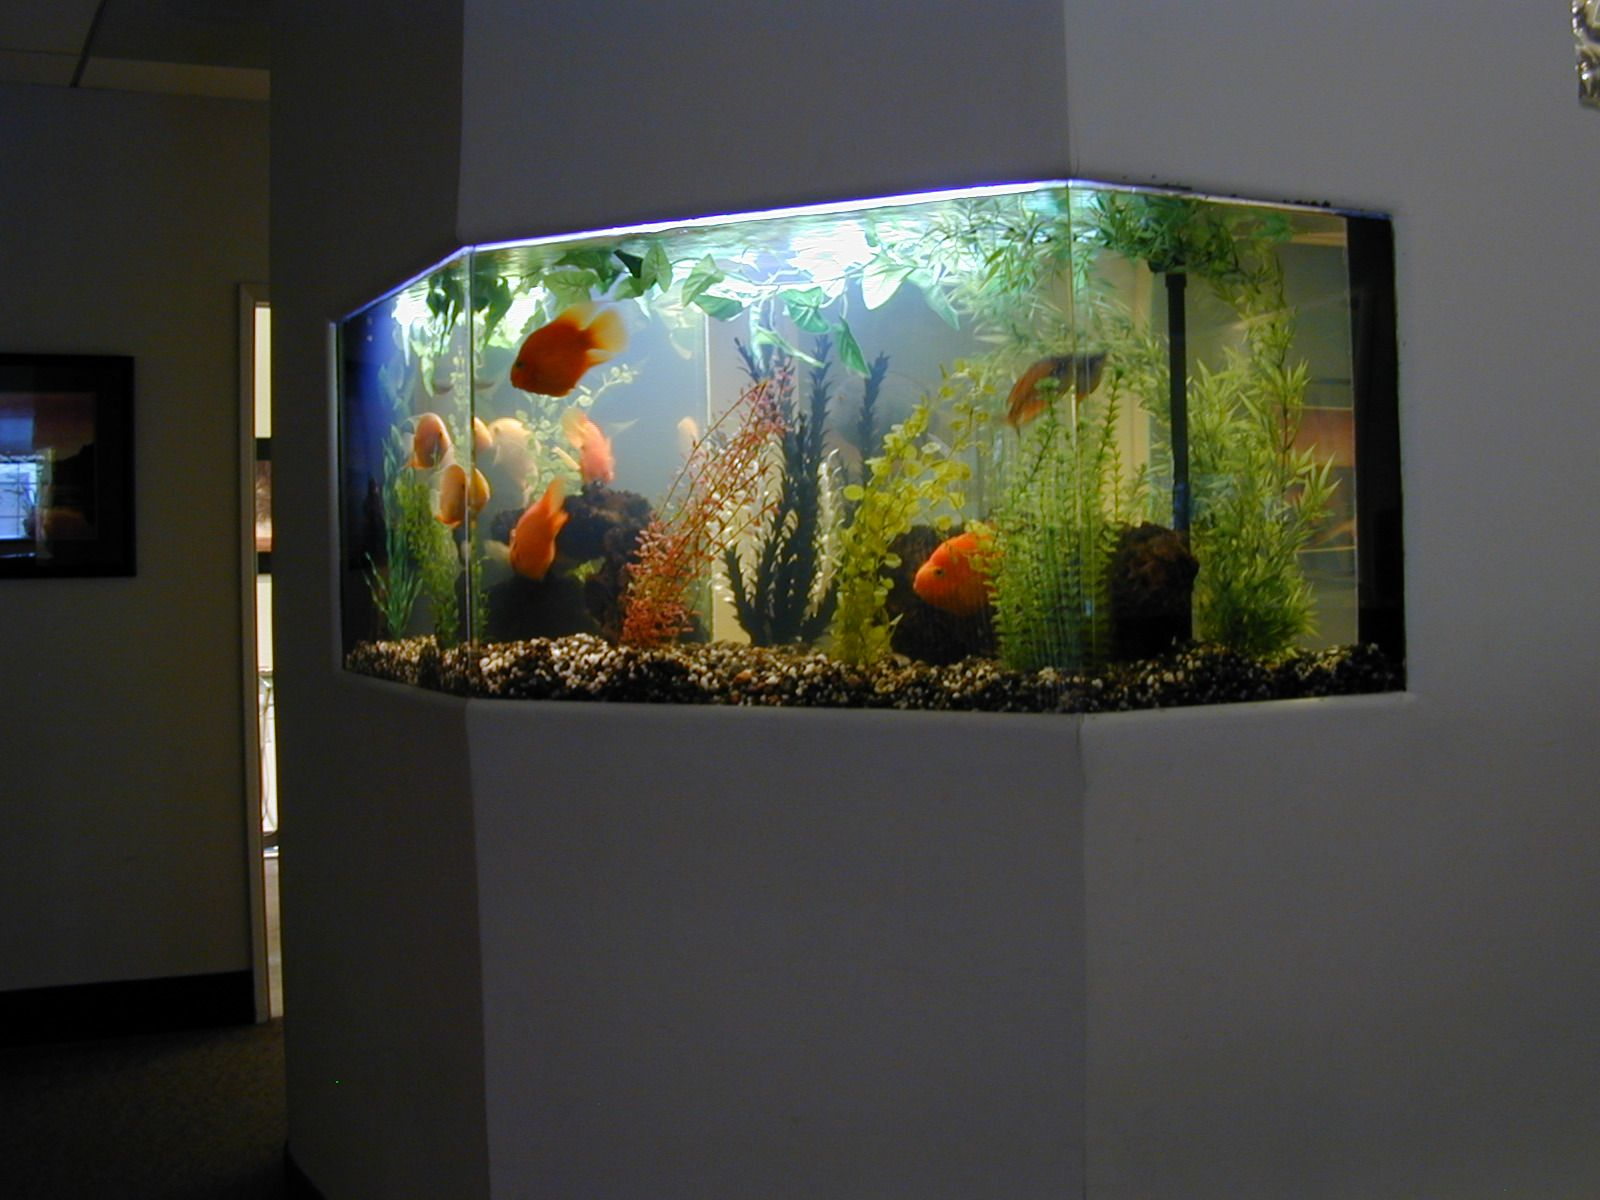 Fish aquarium in brisbane - 35 Unusual Aquariums And Custom Tropical Fish Tanks For Unique Interior Design Fish Tanks